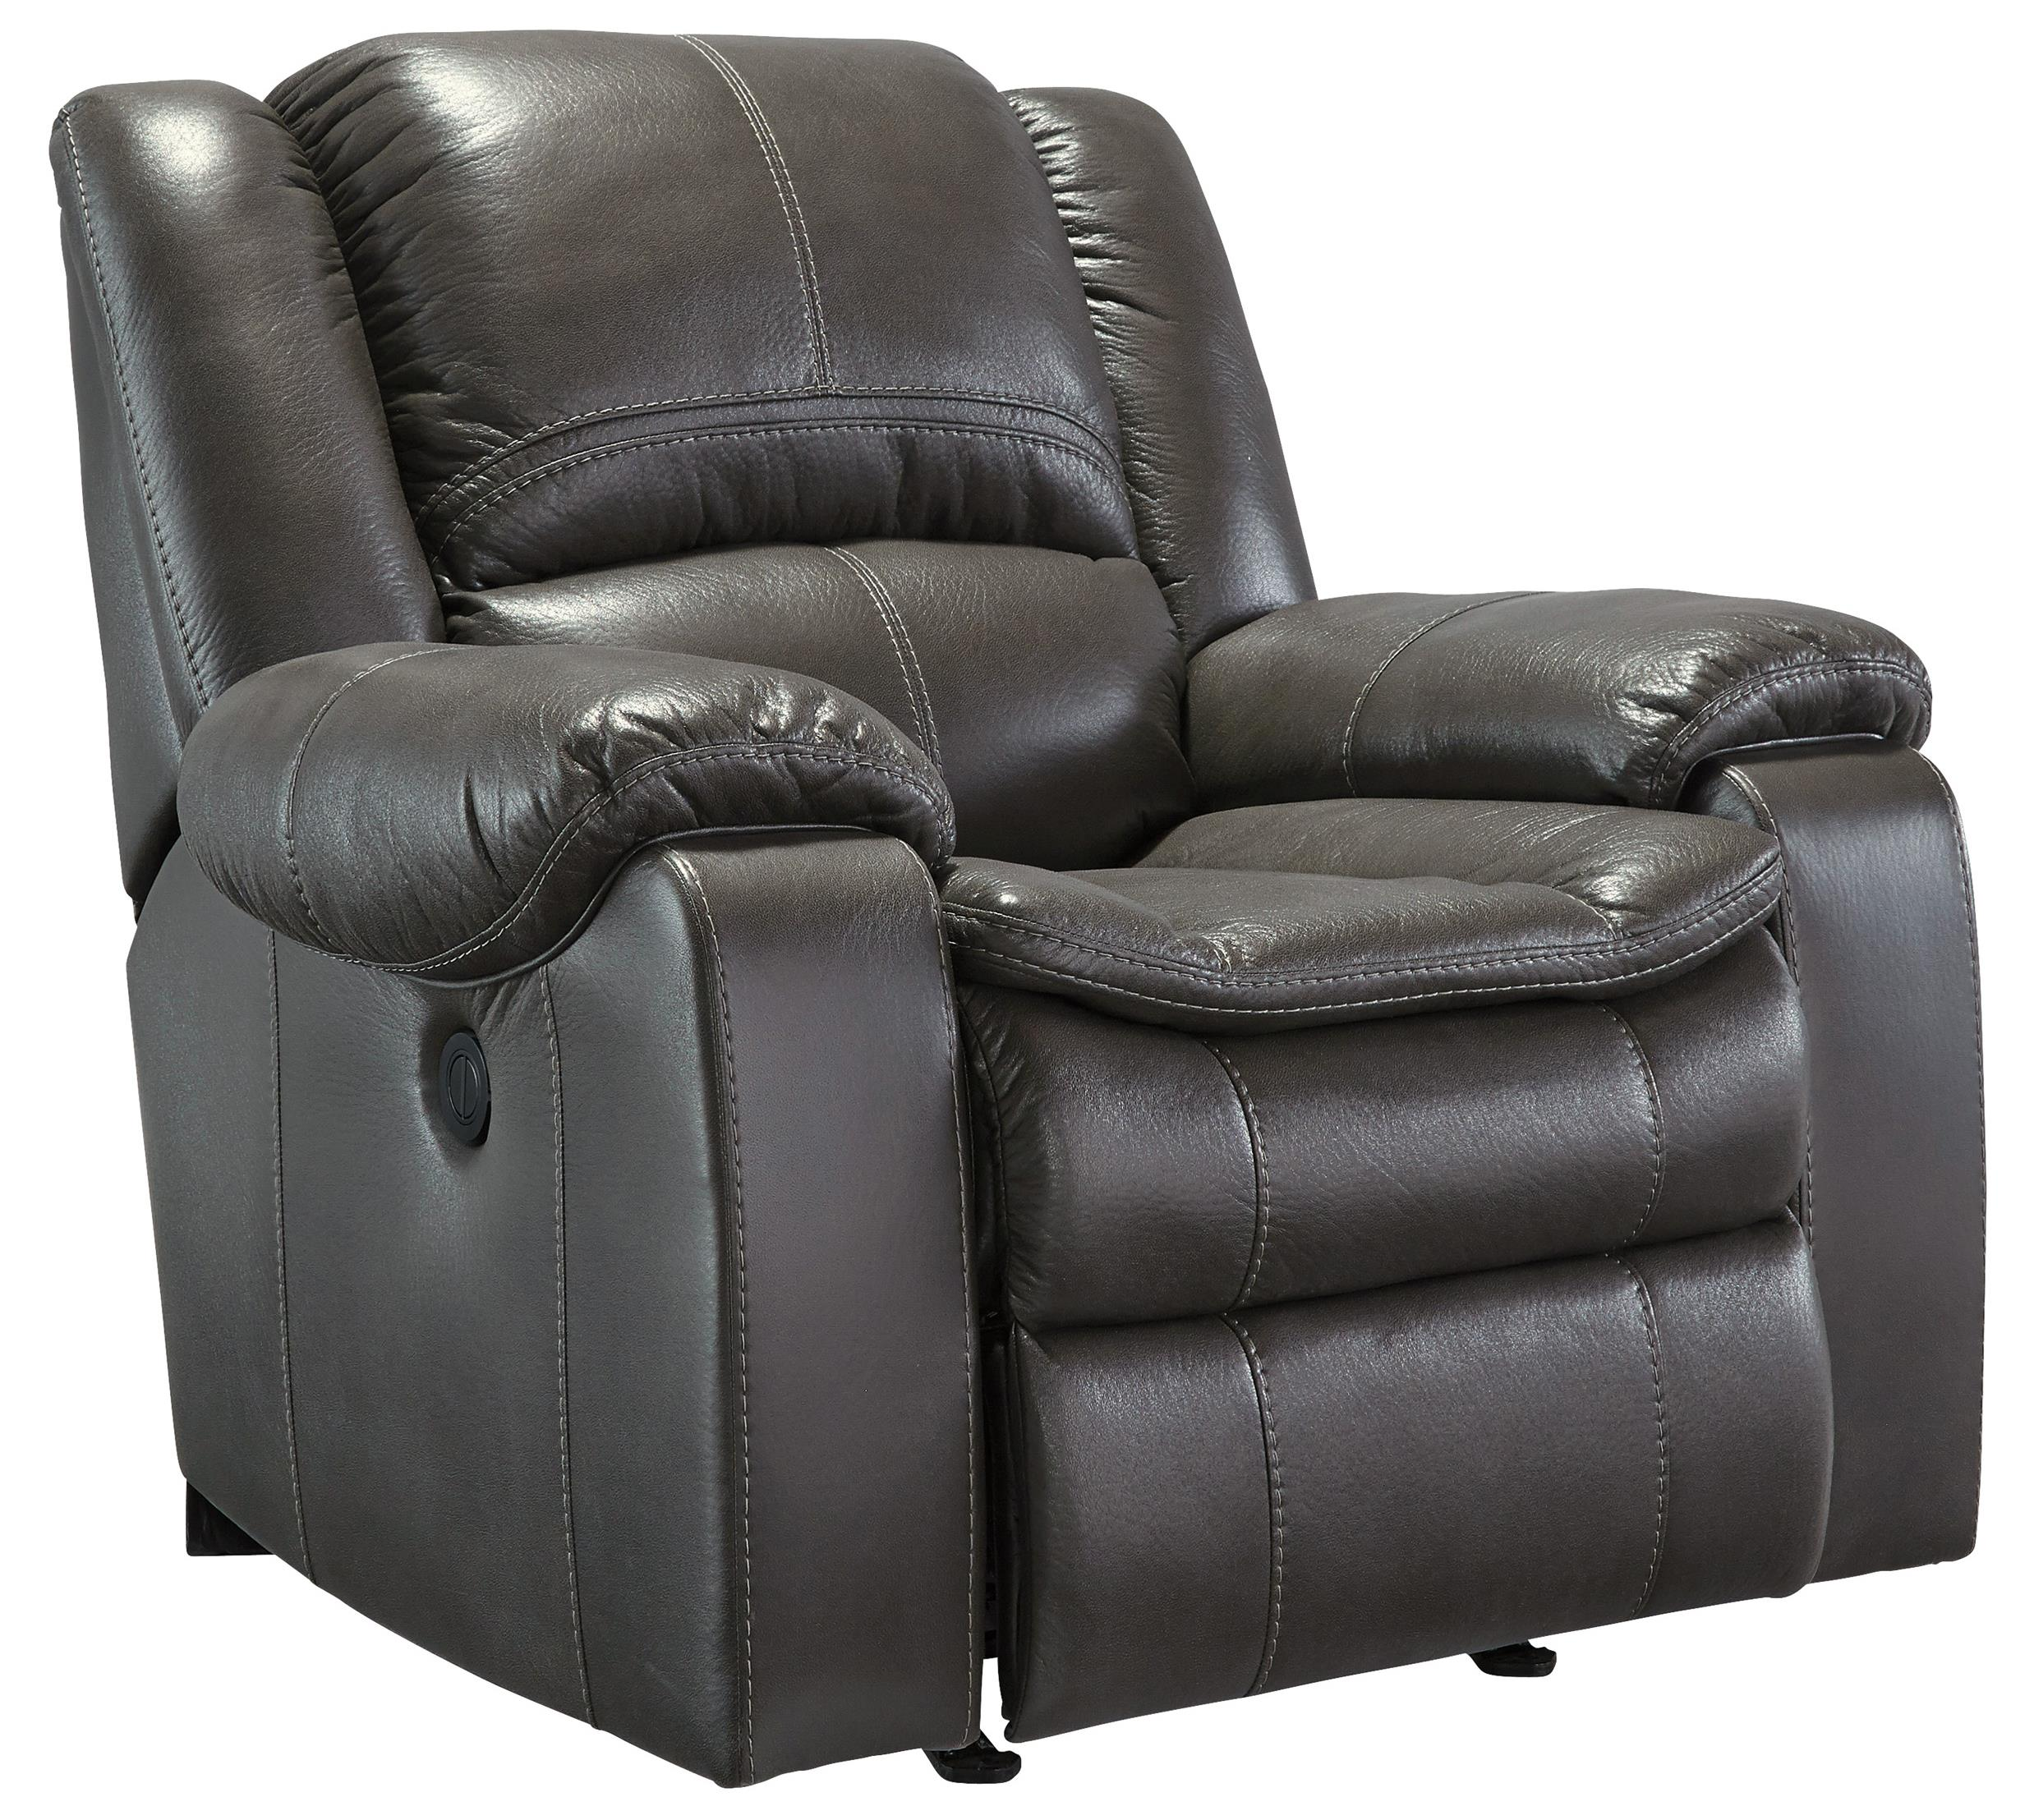 Signature Design by Ashley Long Knight Rocker Recliner - Item Number: 8890625